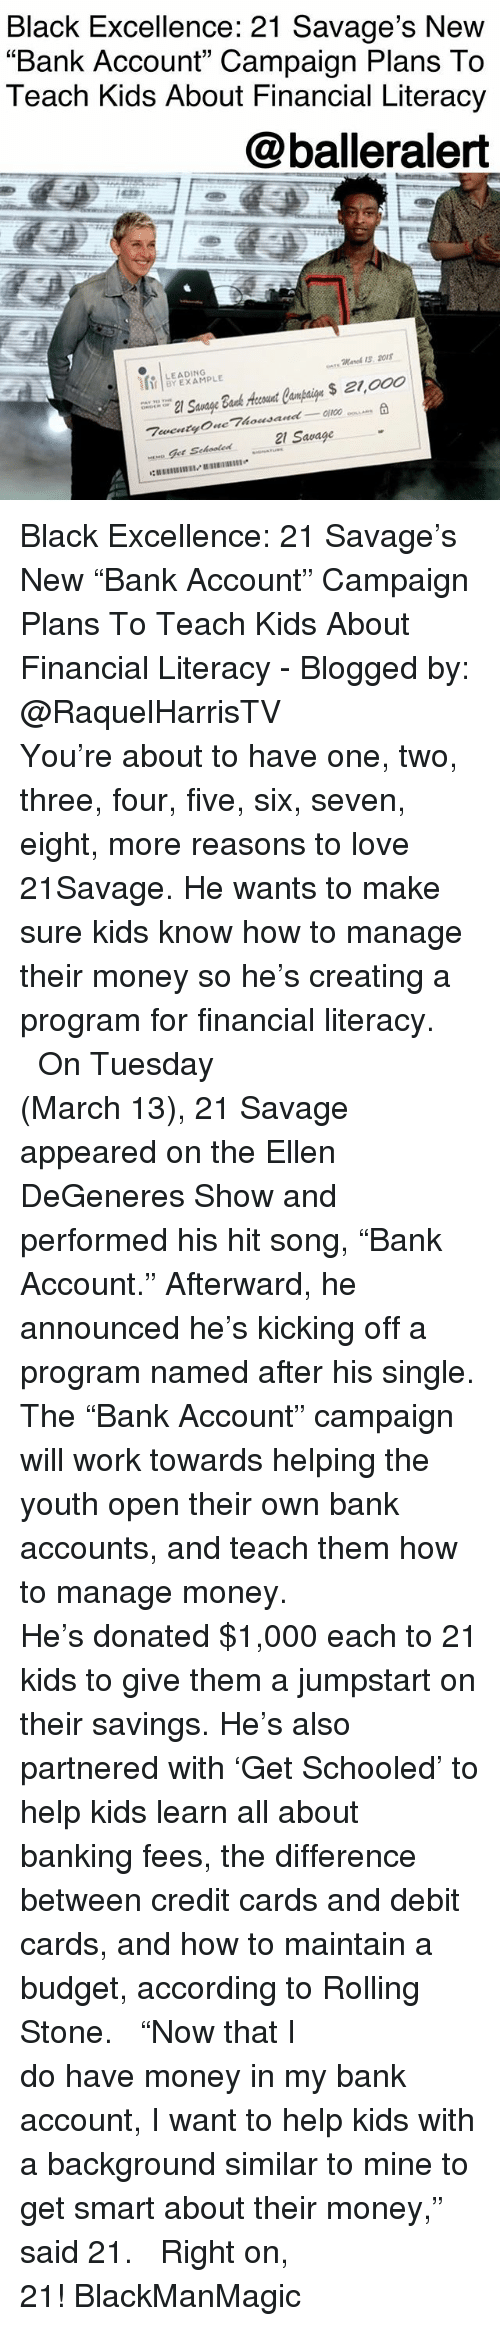 "schooled: Black Excellence: 21 Savage's New  ""Bank Account"" Campaign Plans To  Teach Kids About Financial Literacy  @balleralert  Mares 1I5 2O1  LEADING  21 Savage Black Excellence: 21 Savage's New ""Bank Account"" Campaign Plans To Teach Kids About Financial Literacy - Blogged by: @RaquelHarrisTV ⠀⠀⠀⠀⠀⠀⠀⠀⠀ ⠀⠀⠀⠀⠀⠀⠀⠀⠀ You're about to have one, two, three, four, five, six, seven, eight, more reasons to love 21Savage. He wants to make sure kids know how to manage their money so he's creating a program for financial literacy. ⠀⠀⠀⠀⠀⠀⠀⠀⠀ ⠀⠀⠀⠀⠀⠀⠀⠀⠀ On Tuesday (March 13), 21 Savage appeared on the Ellen DeGeneres Show and performed his hit song, ""Bank Account."" Afterward, he announced he's kicking off a program named after his single. The ""Bank Account"" campaign will work towards helping the youth open their own bank accounts, and teach them how to manage money. ⠀⠀⠀⠀⠀⠀⠀⠀⠀ ⠀⠀⠀⠀⠀⠀⠀⠀⠀ He's donated $1,000 each to 21 kids to give them a jumpstart on their savings. He's also partnered with 'Get Schooled' to help kids learn all about banking fees, the difference between credit cards and debit cards, and how to maintain a budget, according to Rolling Stone. ⠀⠀⠀⠀⠀⠀⠀⠀⠀ ⠀⠀⠀⠀⠀⠀⠀⠀⠀ ""Now that I do have money in my bank account, I want to help kids with a background similar to mine to get smart about their money,"" said 21. ⠀⠀⠀⠀⠀⠀⠀⠀⠀ ⠀⠀⠀⠀⠀⠀⠀⠀⠀ Right on, 21! BlackManMagic"